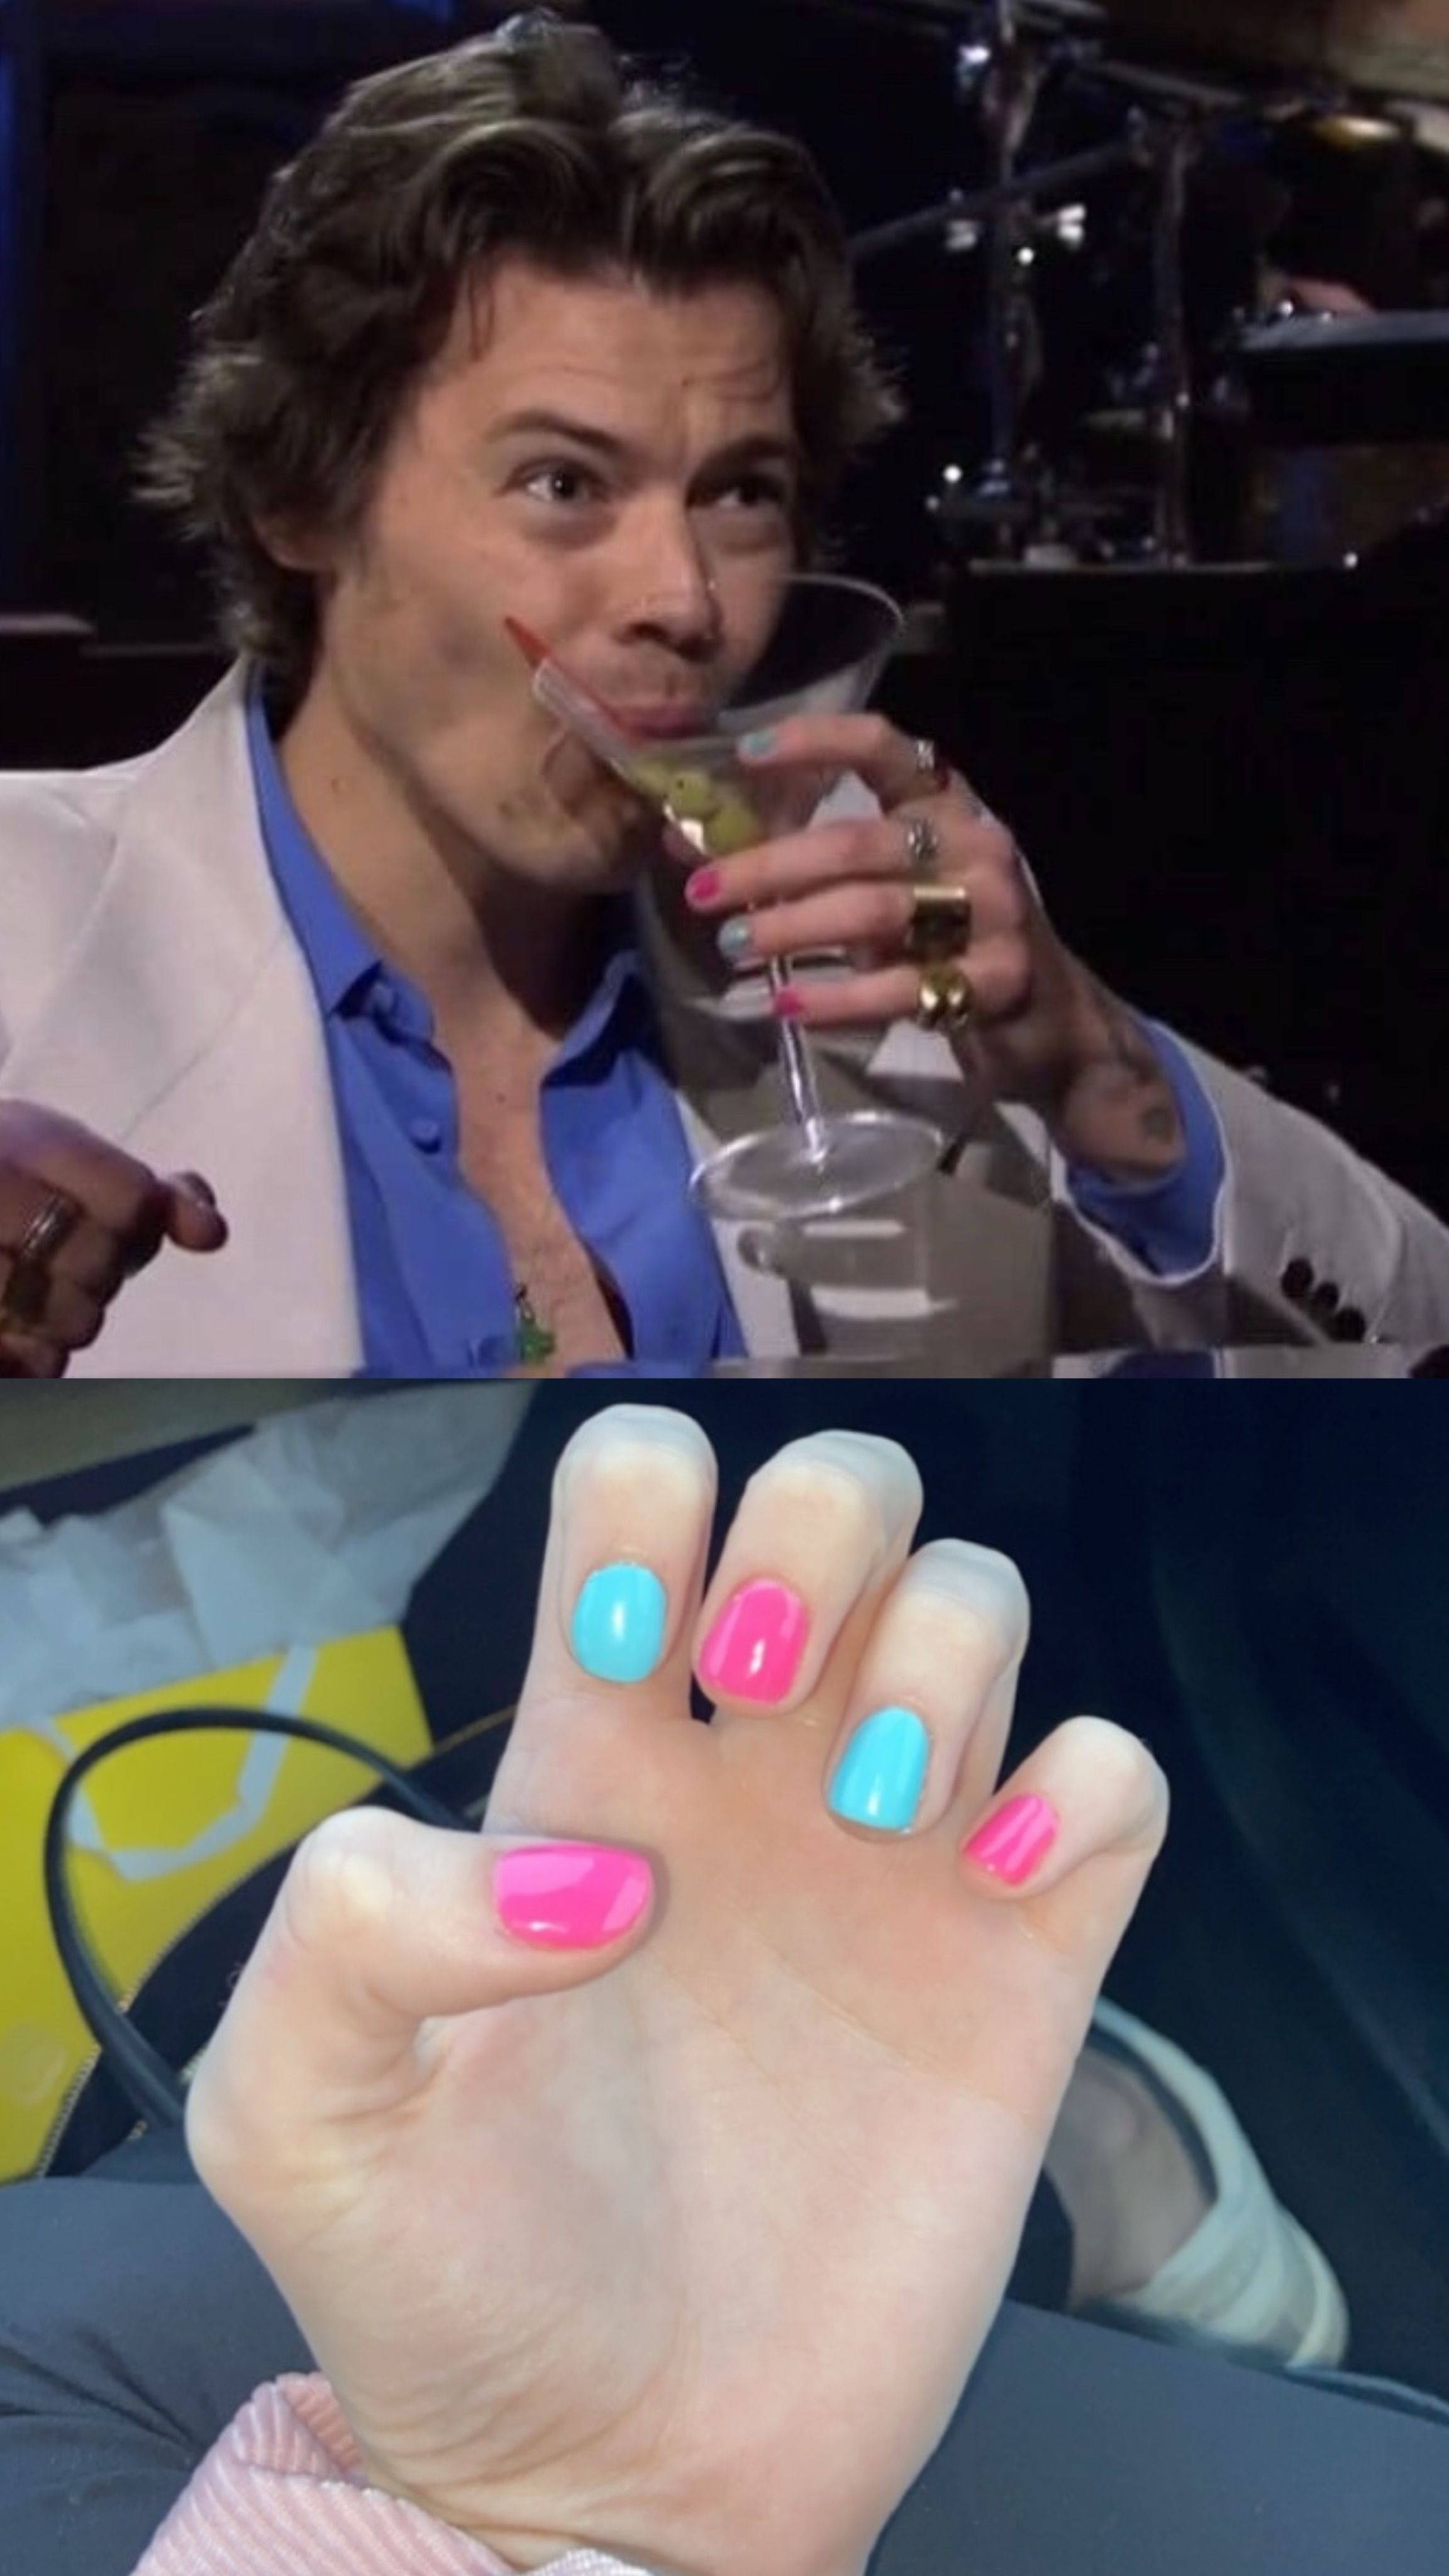 Harry Styles Nails On Snl Snl New Girl Jim Halpert New Girl Quotes Stephen Colbert Schmidt Adventure Time Geek In 2020 Fashion Nails Harry Styles Tattoos Harry Styles